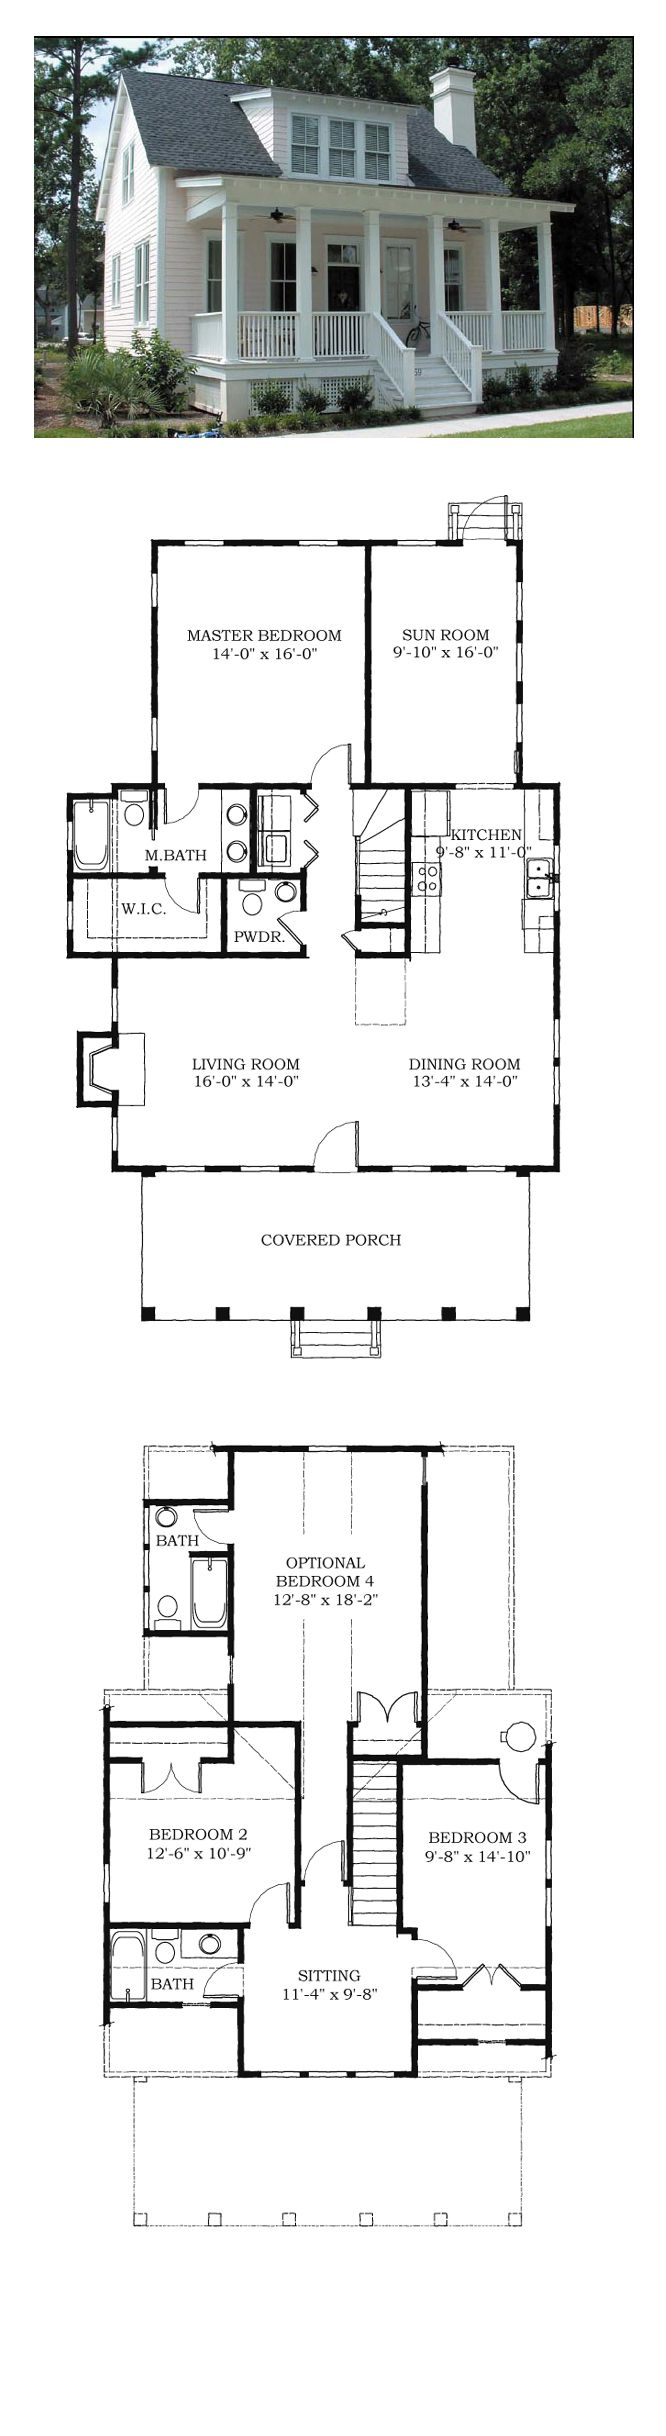 Prime 17 Best Ideas About Small House Plans On Pinterest Small House Largest Home Design Picture Inspirations Pitcheantrous